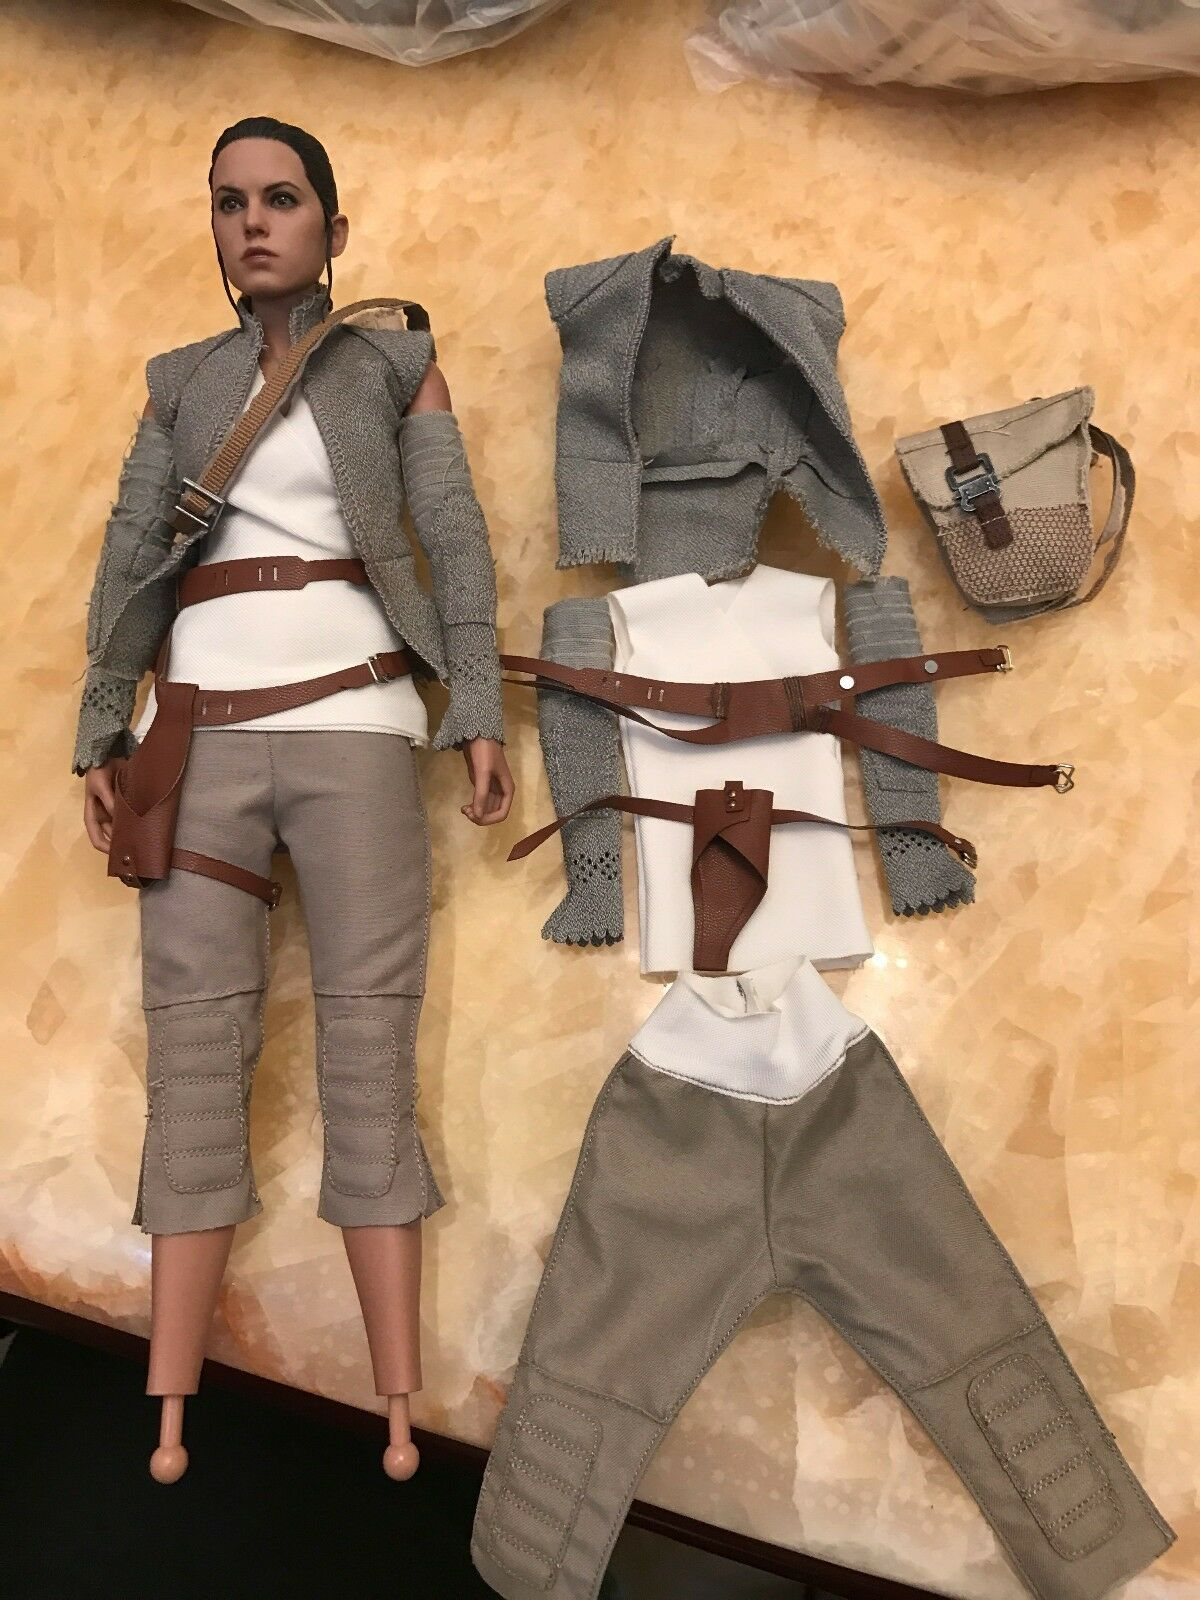 1 6 Rey Daisy Ridley 7 pcs clothes set for Hot Toys MMS 377 Resistance